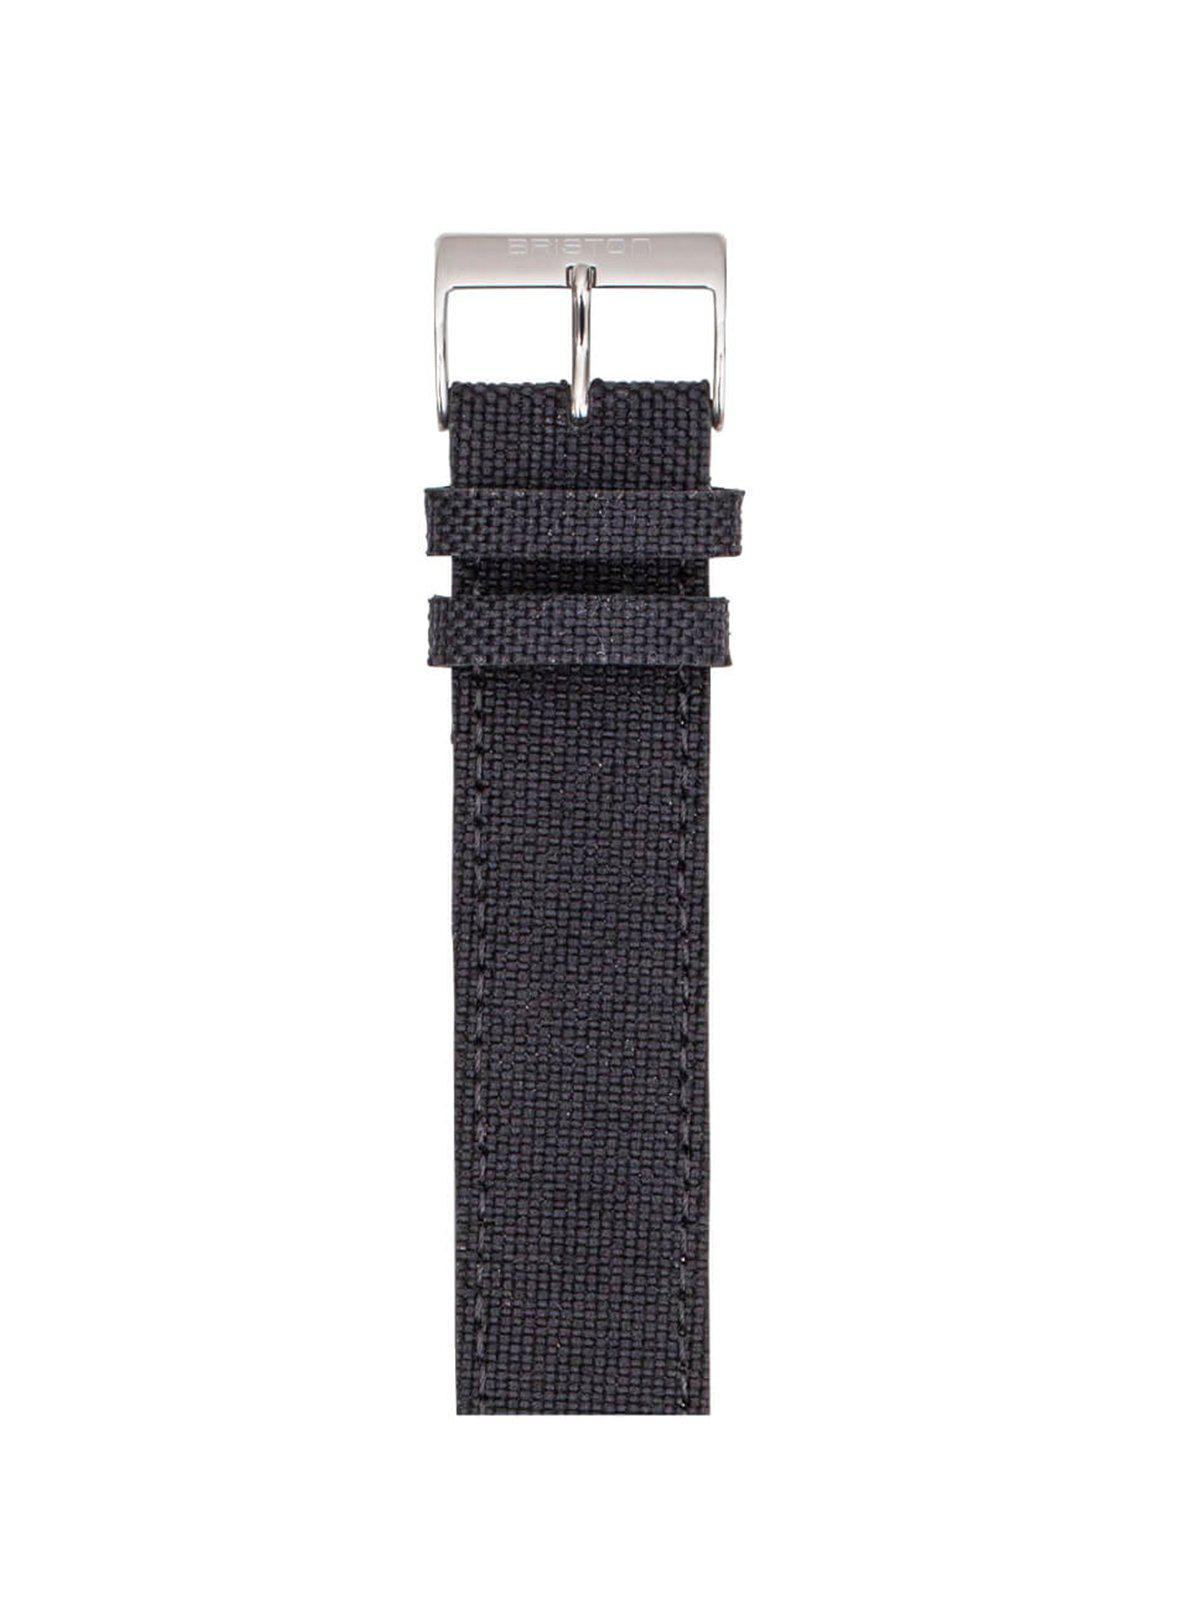 Briston Leather Canvas Strap Black 20mm